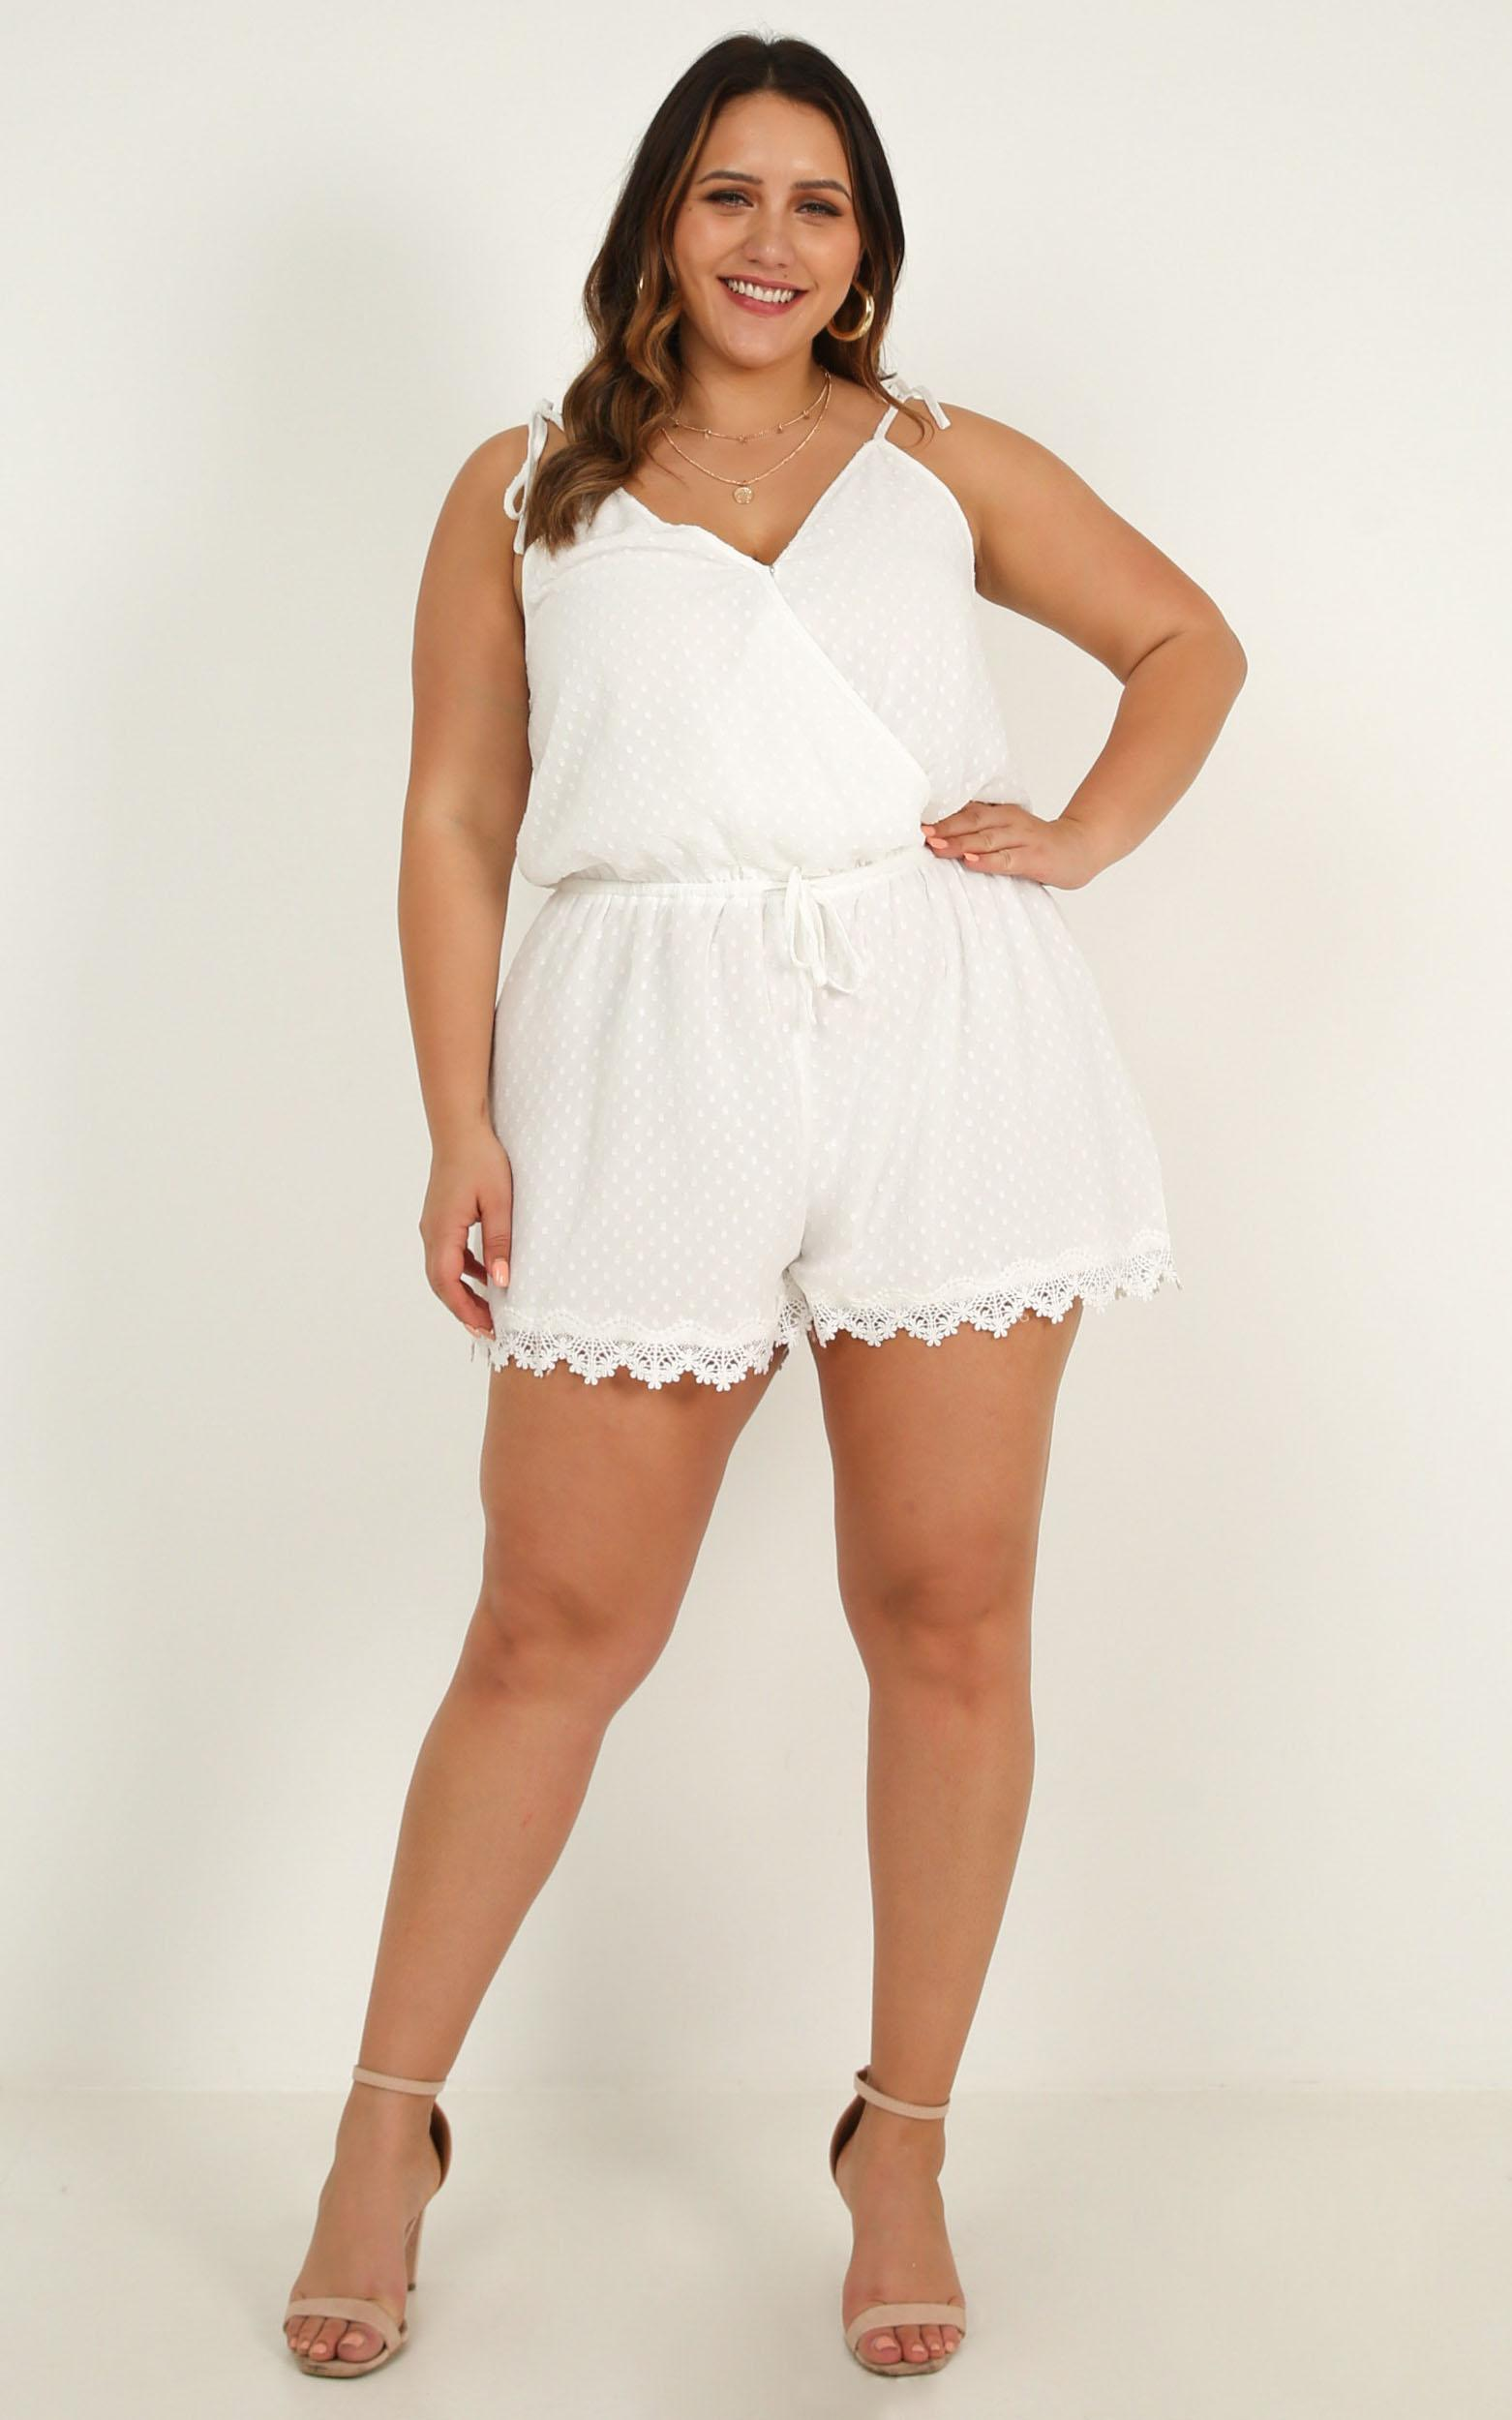 Tropo Dream Playsuit in white - 20 (XXXXL), White, hi-res image number null